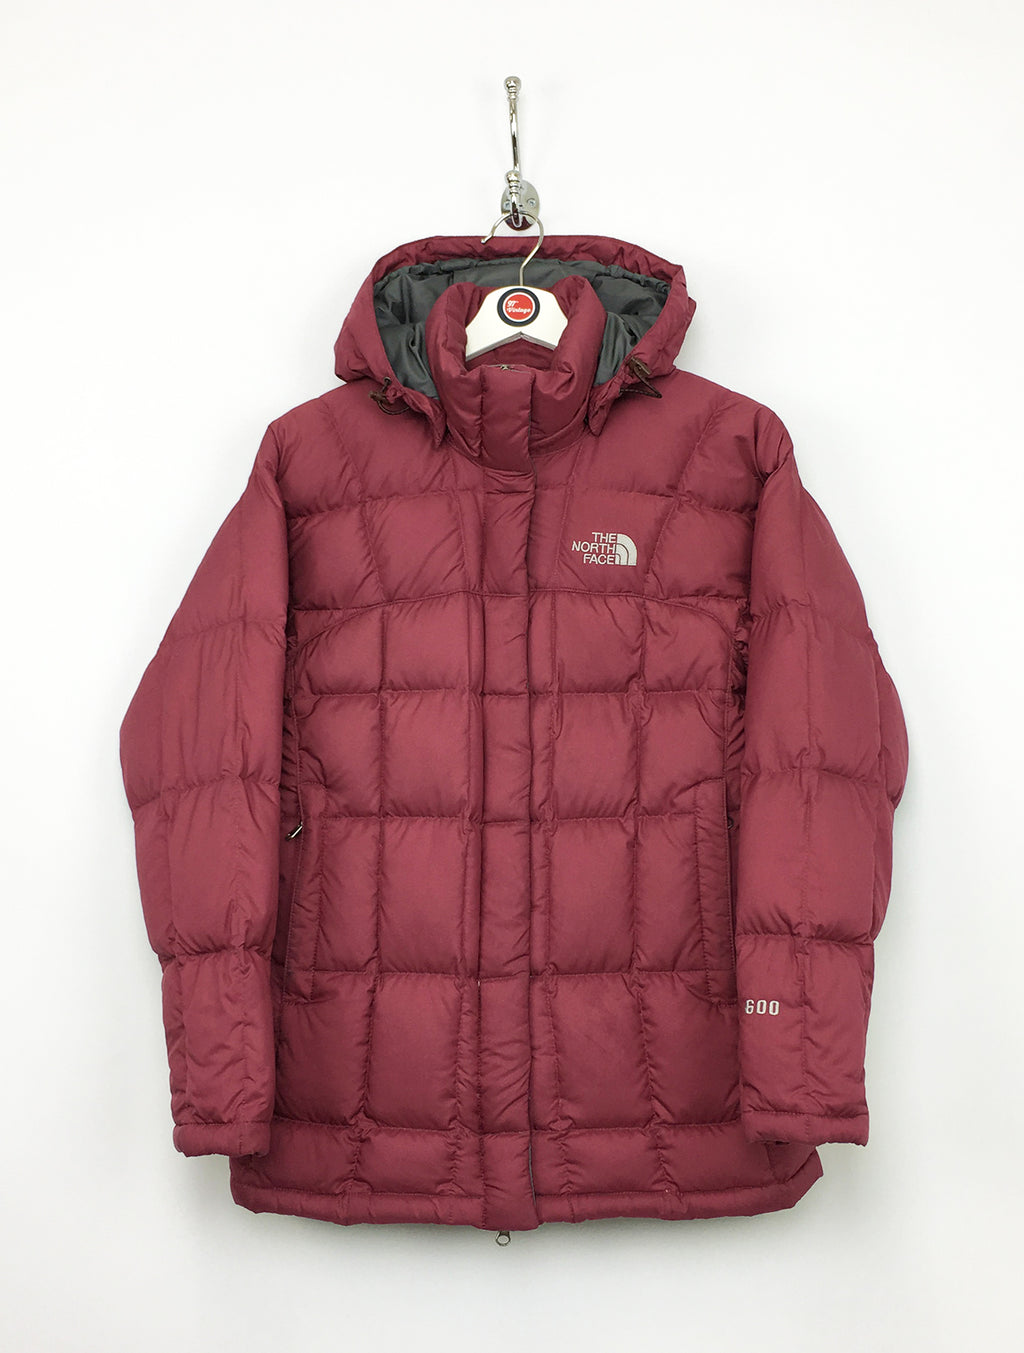 The North Face 600 Puffer Coat (XS)